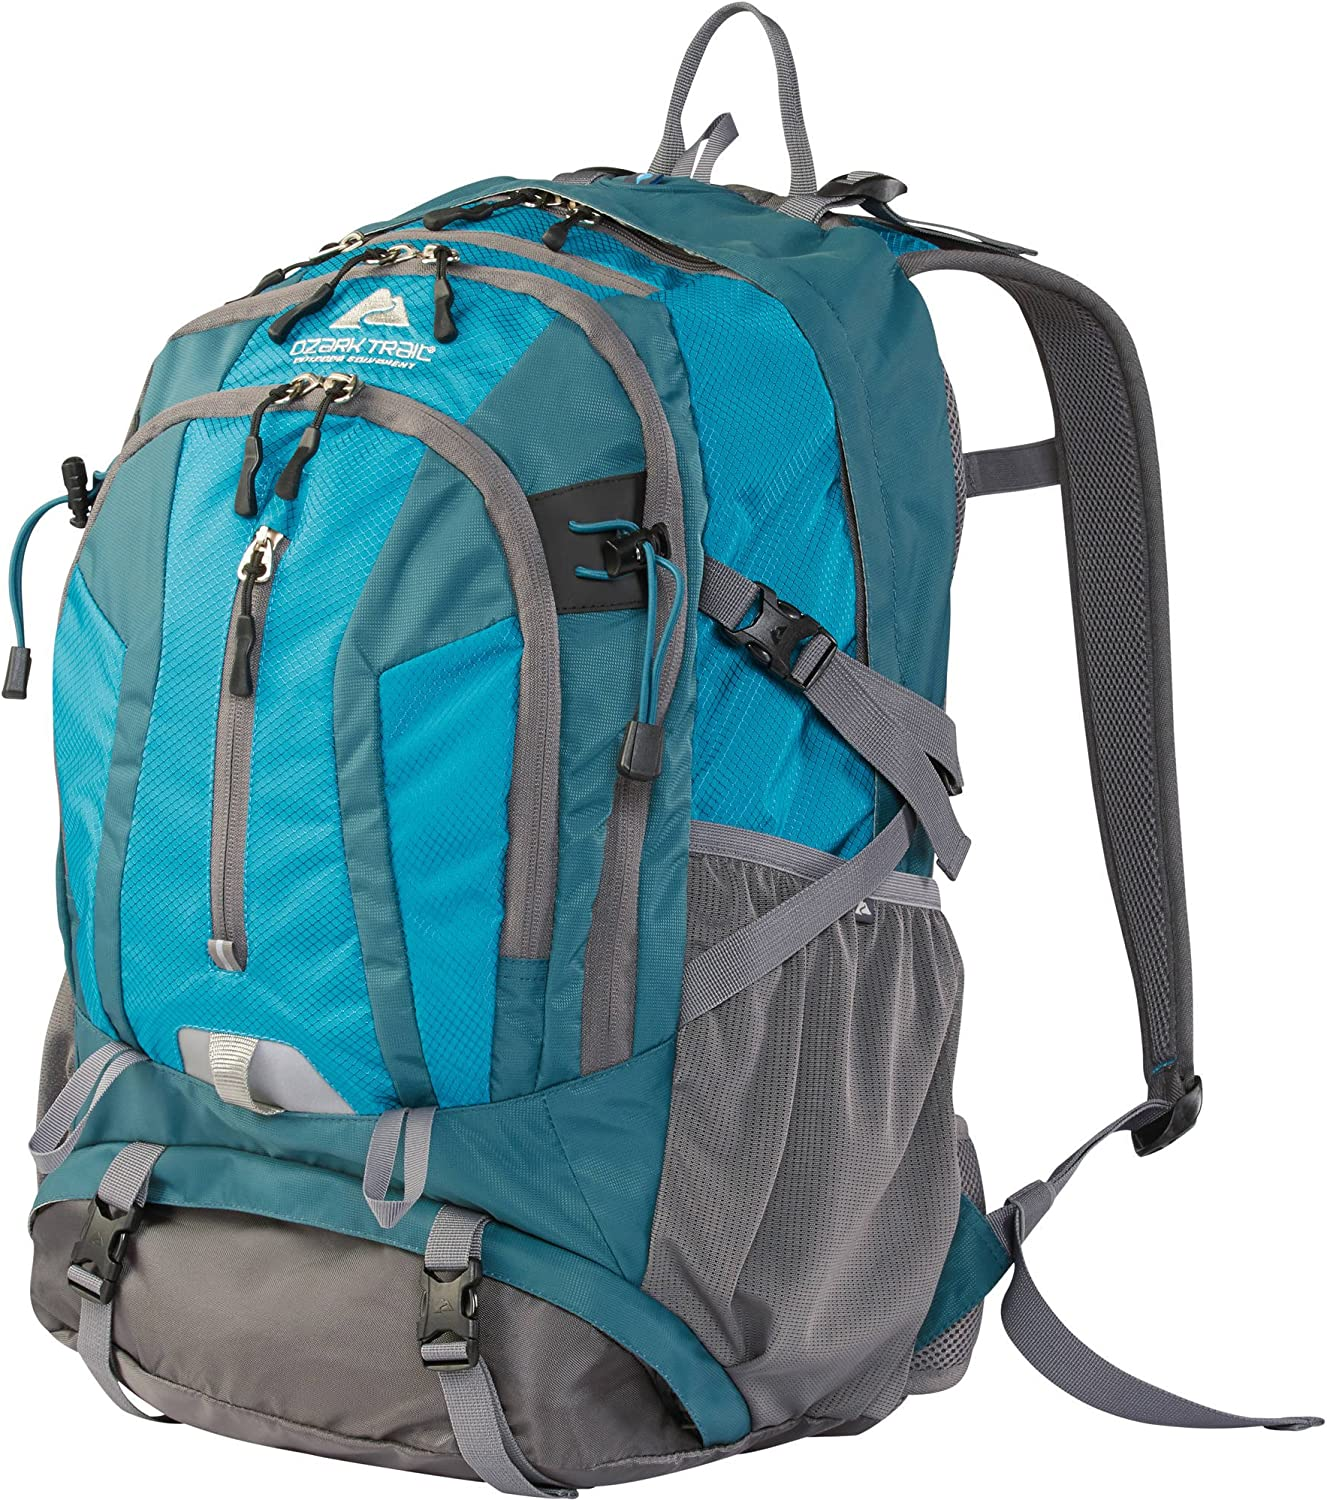 Ozark Trail 36L Kachemak Daypack Hiking Backpack, Blue